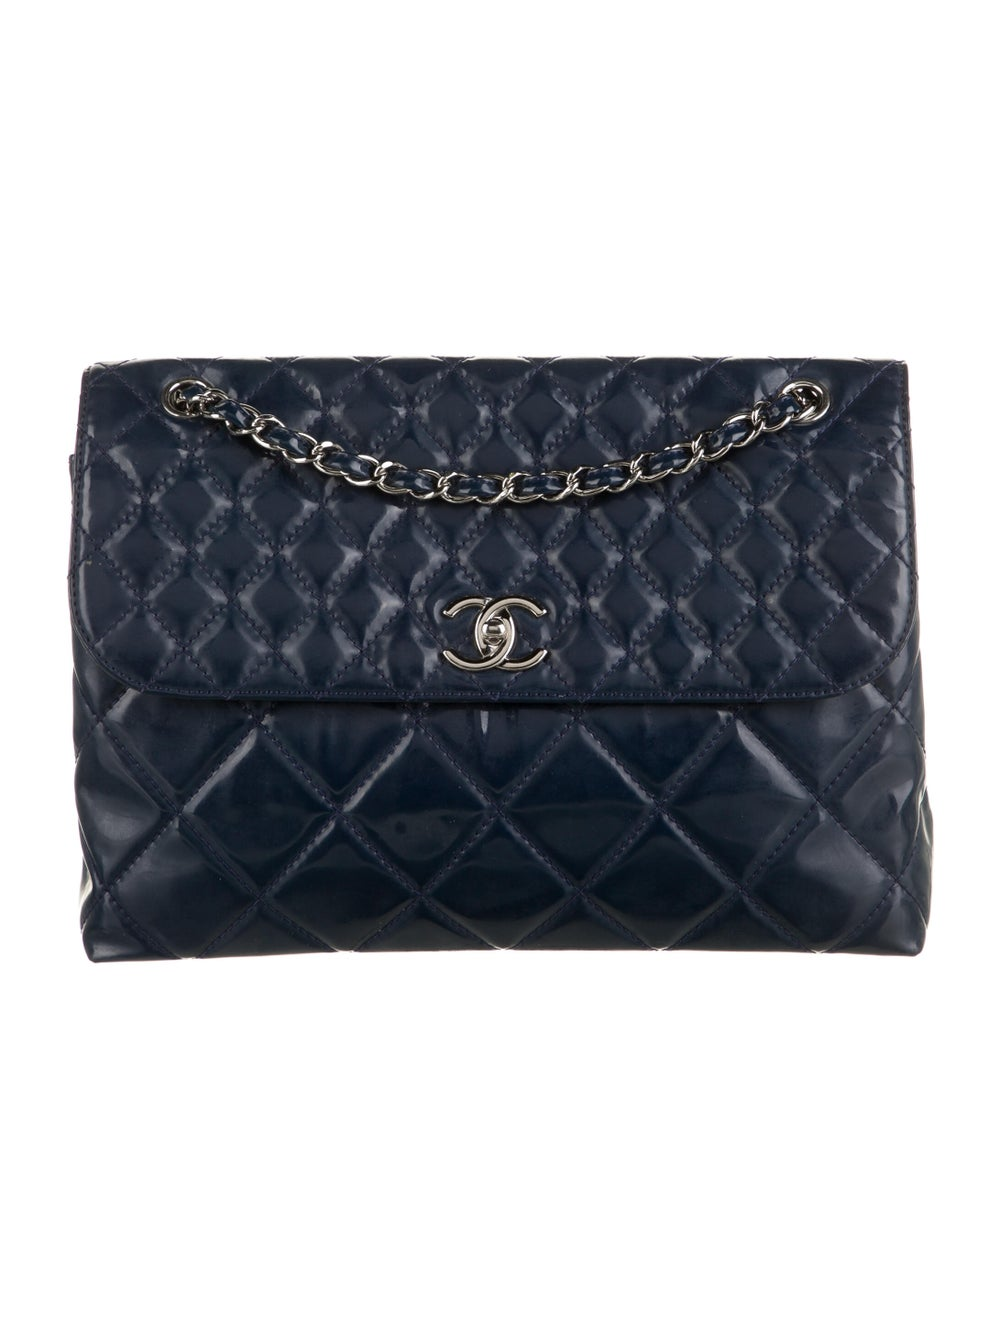 Chanel In The Business Patent Flap Bag Blue - image 1